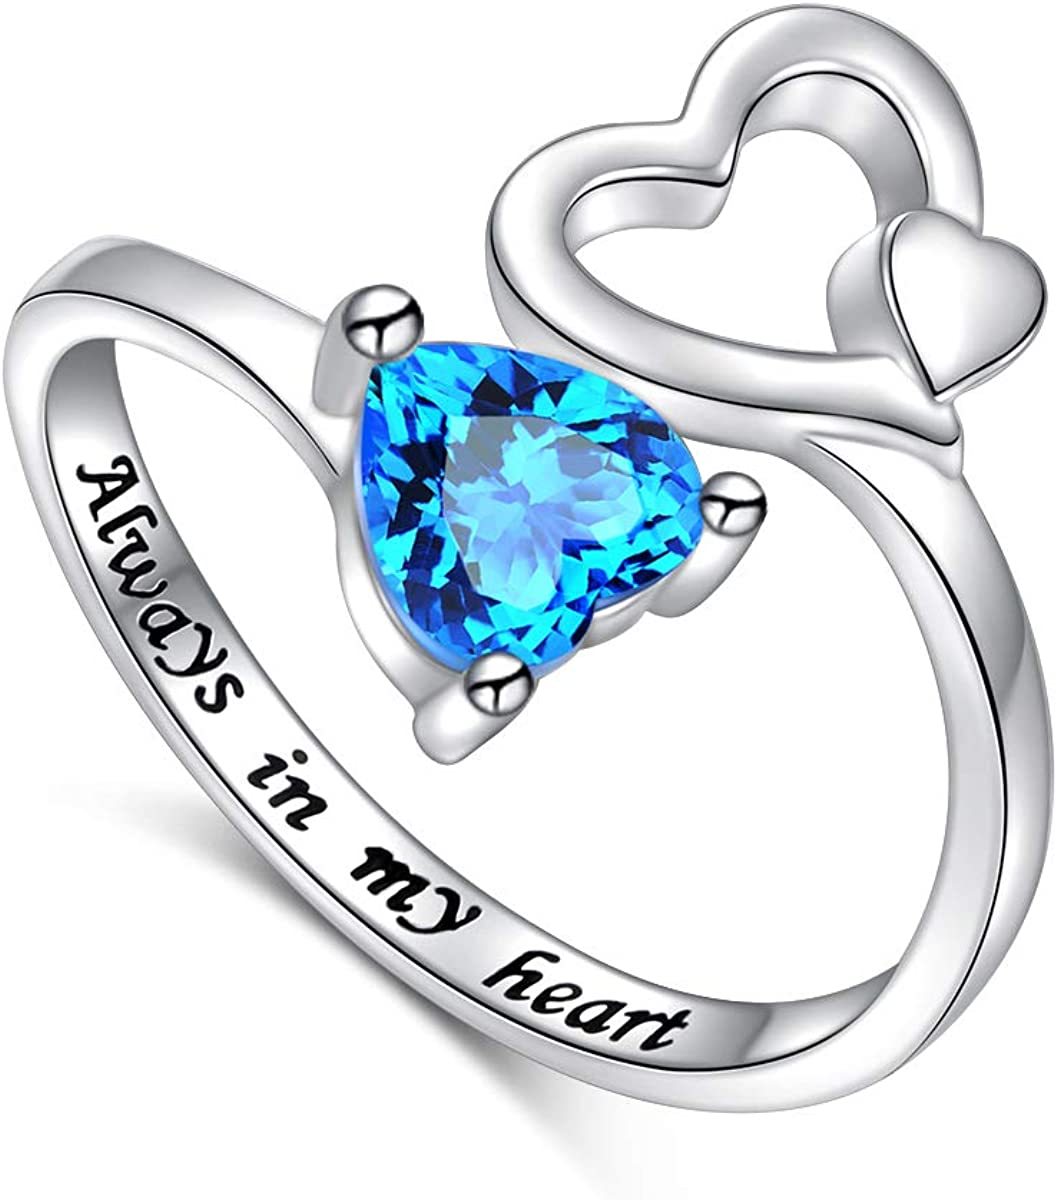 Super beauty product restock quality top! 925 Sterling Silver Heart Shipping included Ring Message Wedding Love fo with